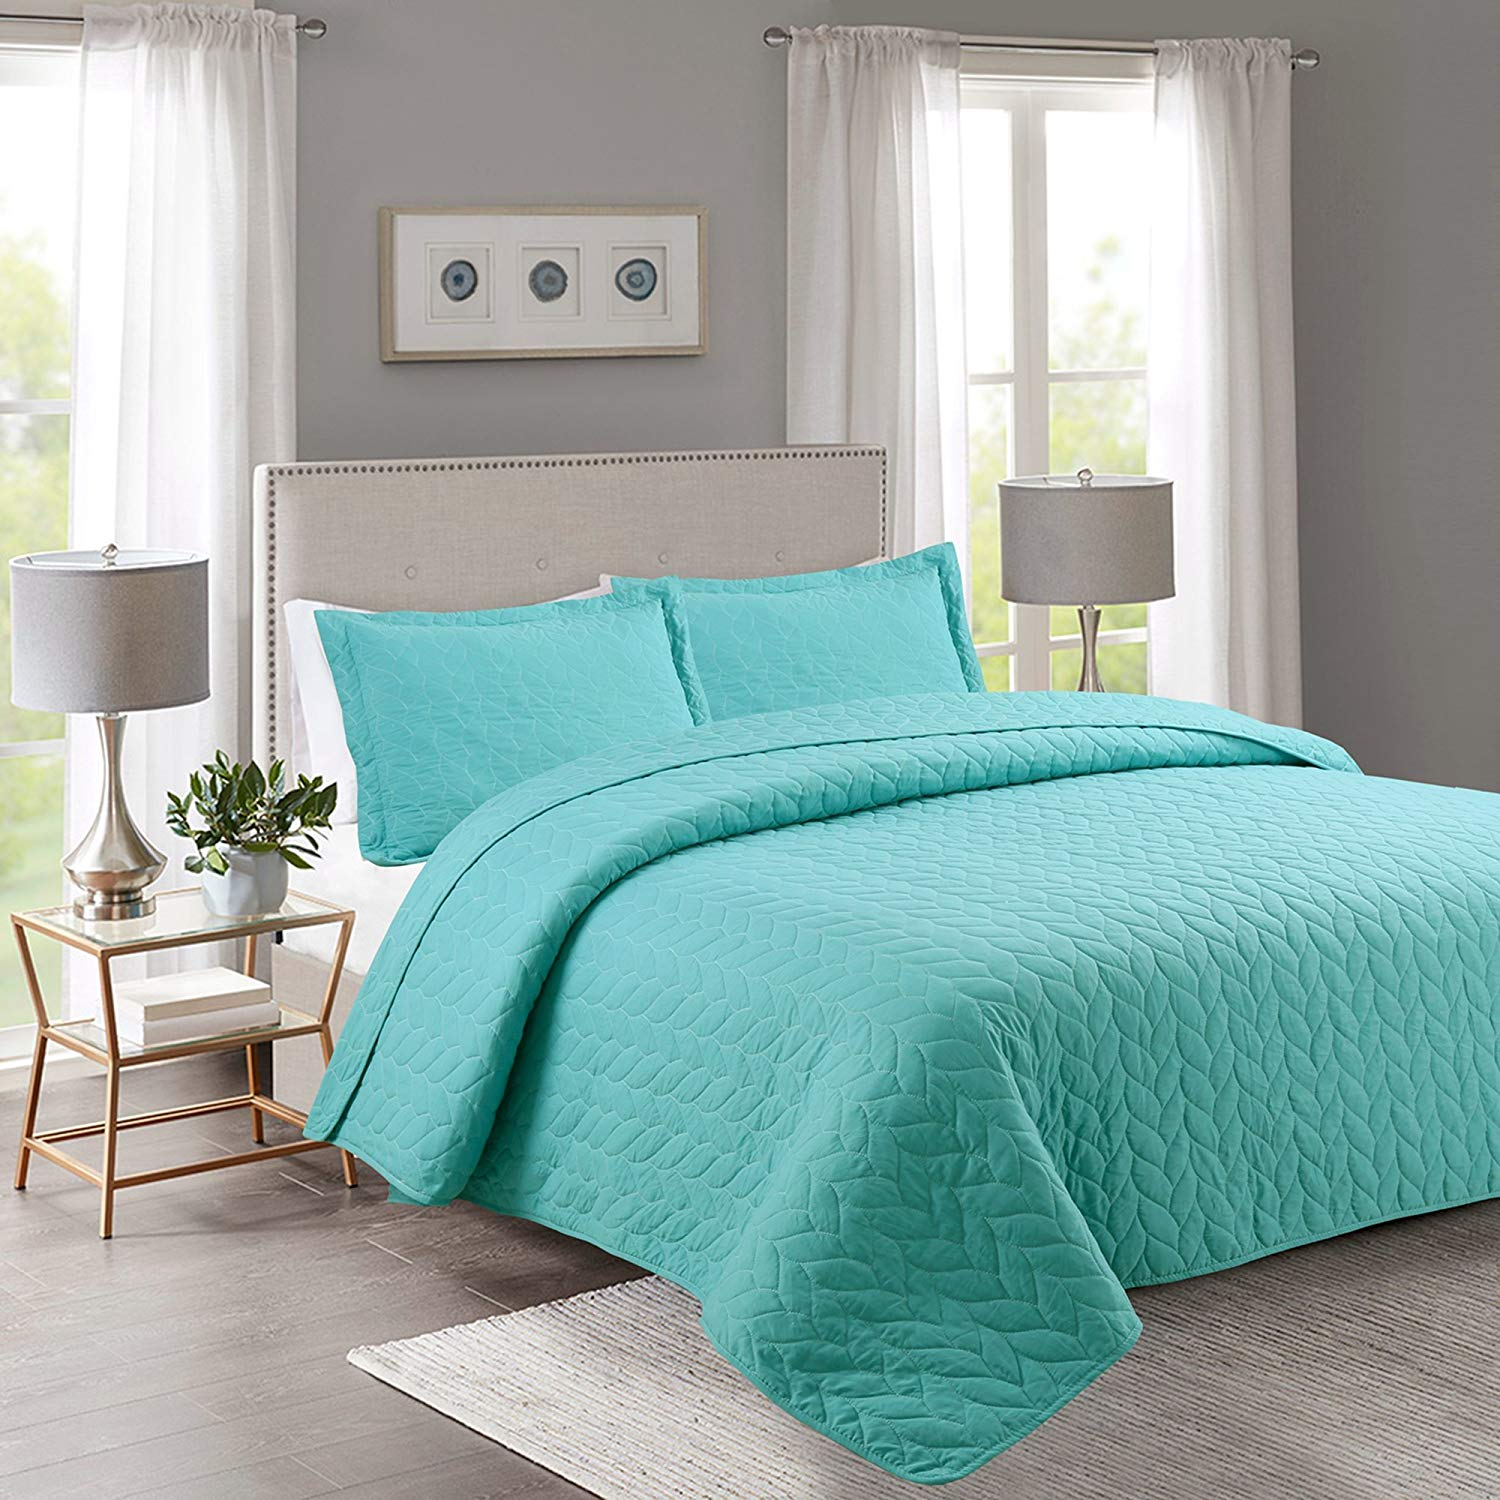 Bed Coverlet Marcielo 3 Piece Lightweight Bedspread Quilt Set Microfiber Quilt Bedspreads Bed Coverlet Set Prewashed Leaf Teal Queen